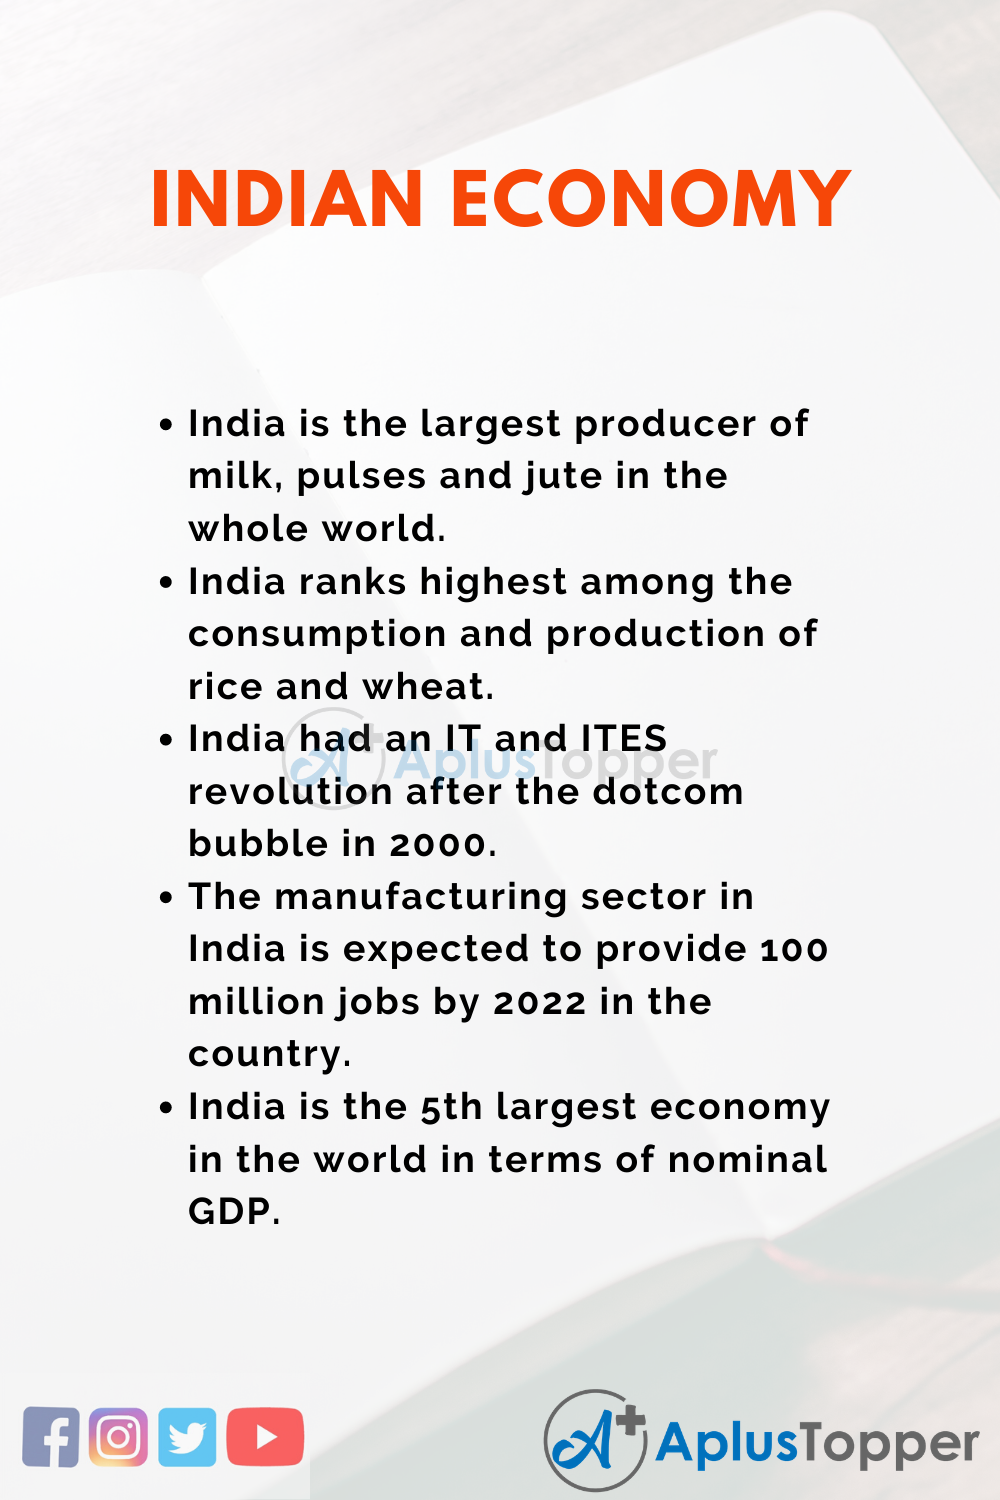 Essay about Indian Economy